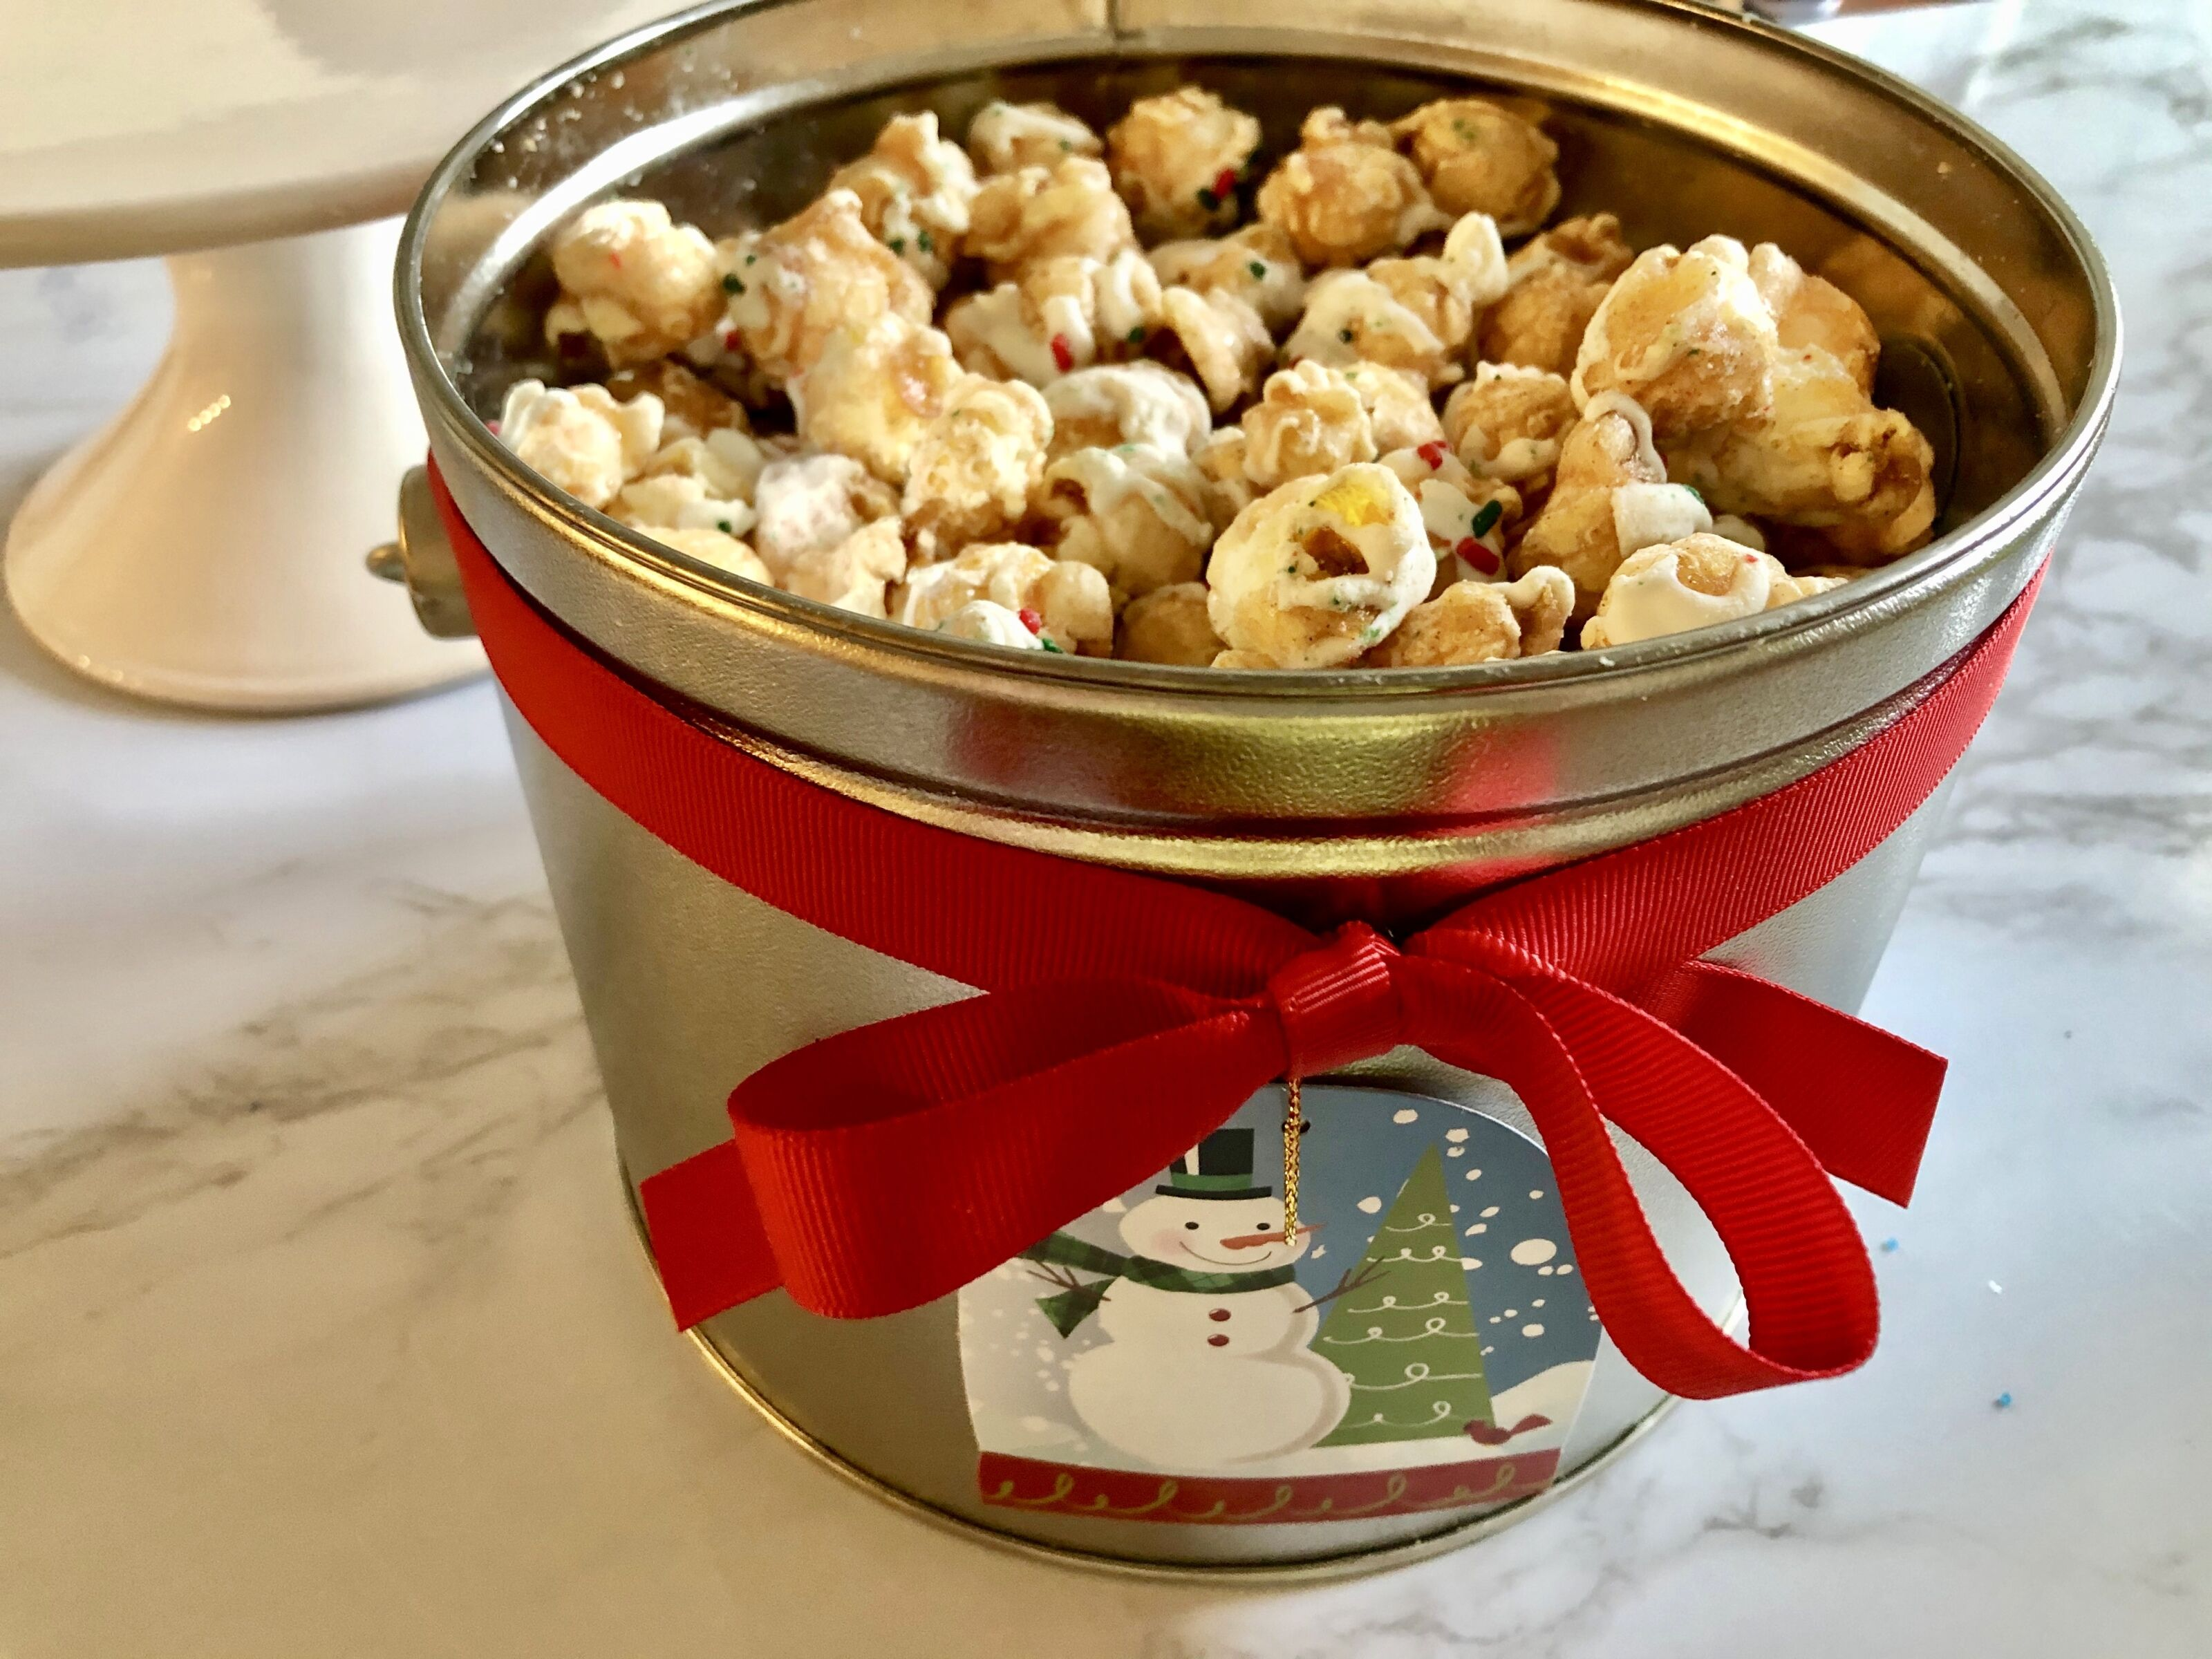 Magical Holiday Popcorn Pail from The Popcorn Factory